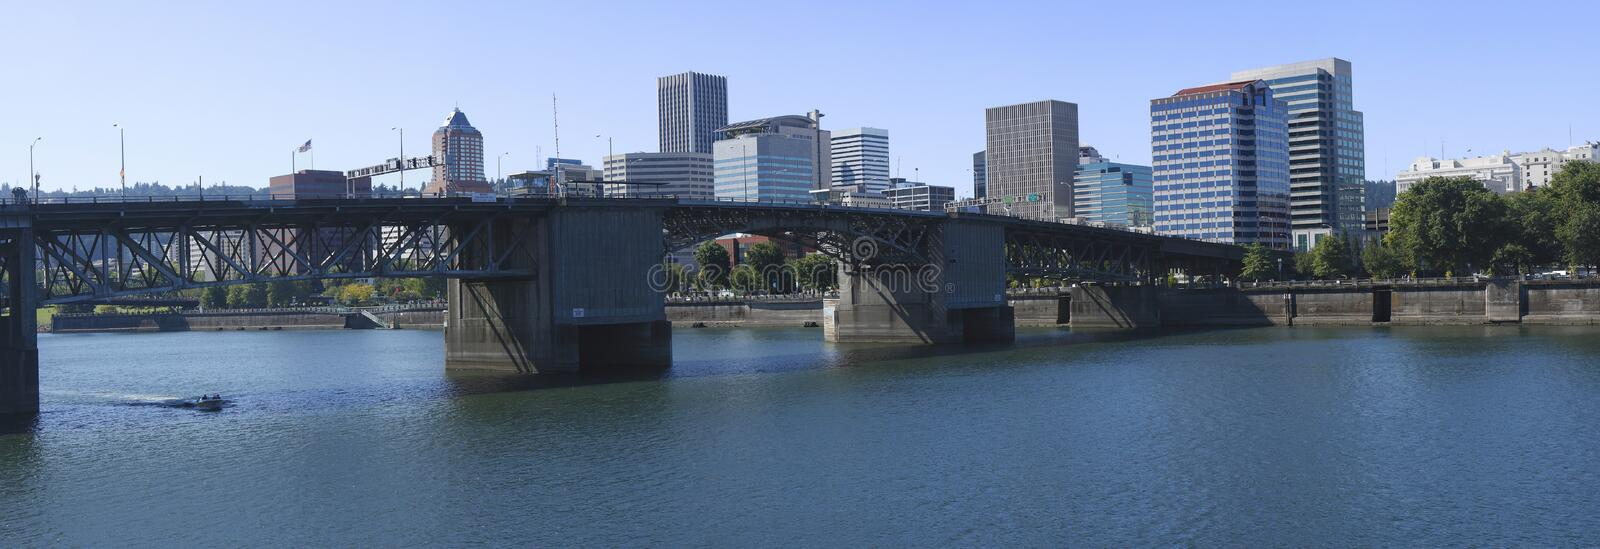 The Burnside Bridge Portland OR. royalty free stock images